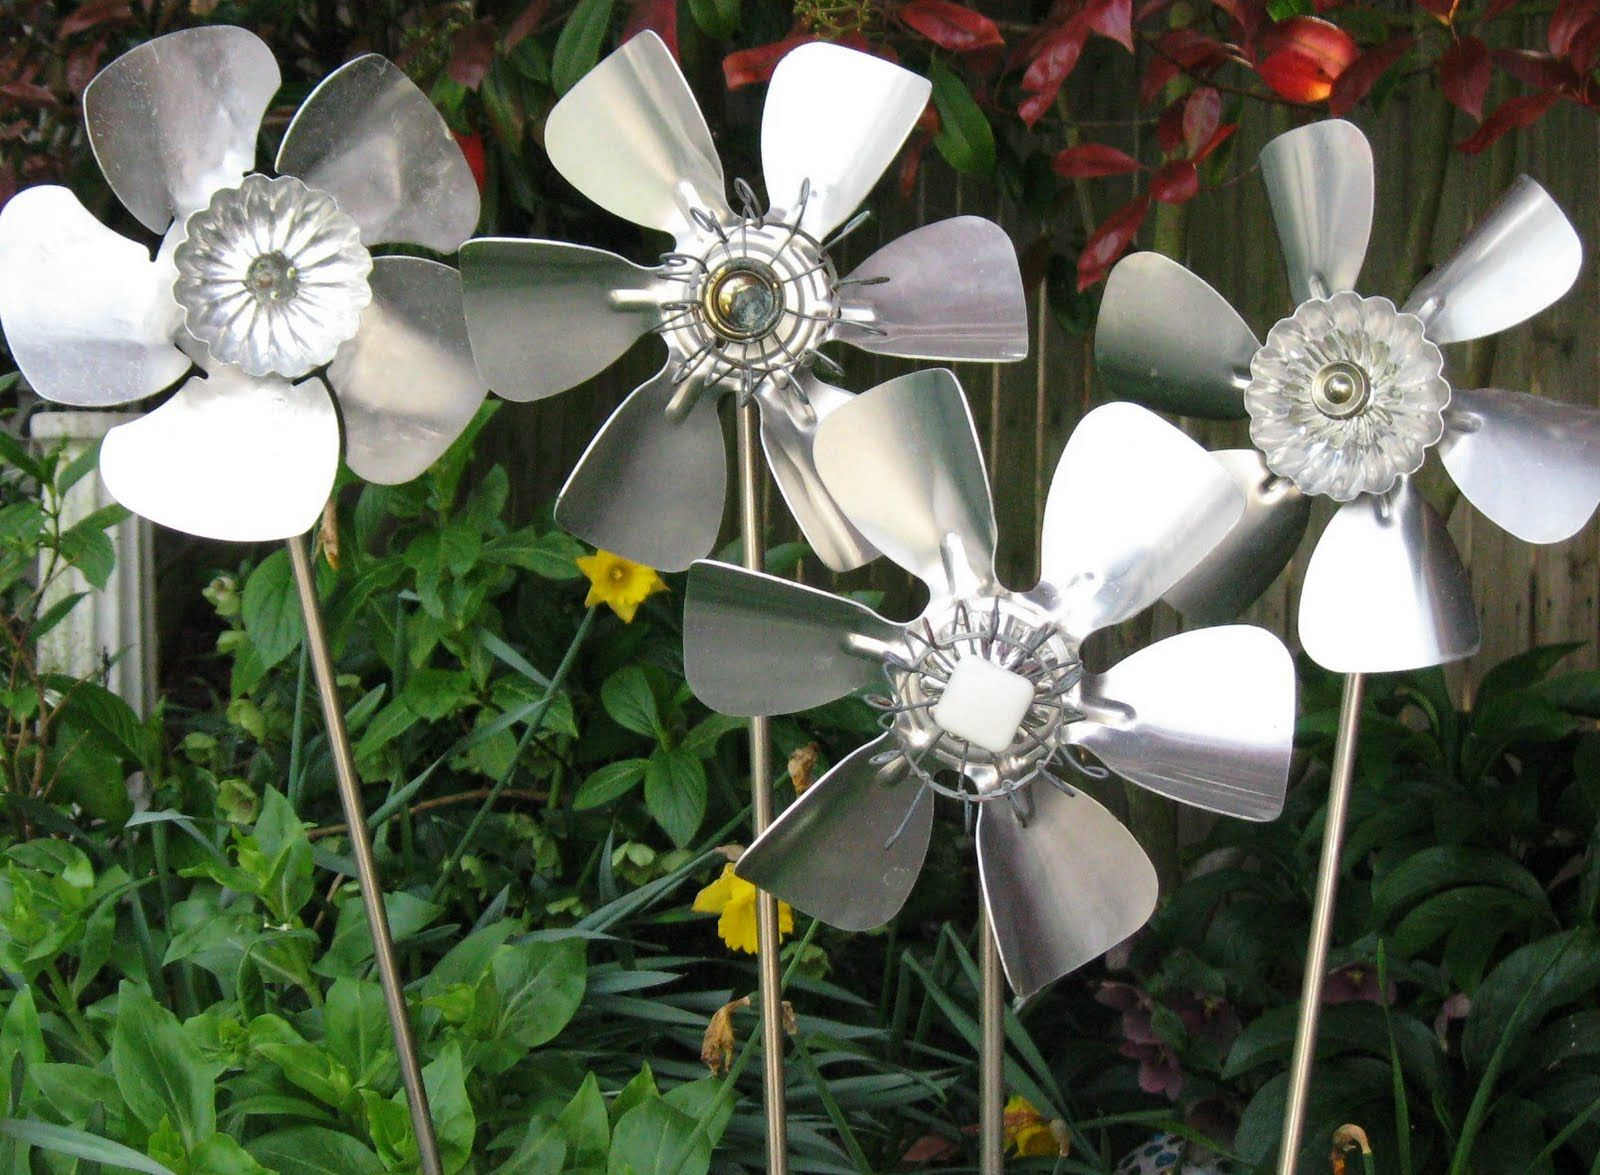 Creating Scrap Metal Art Design for Garden: Scrap Metal Art Flowers Design For Garden